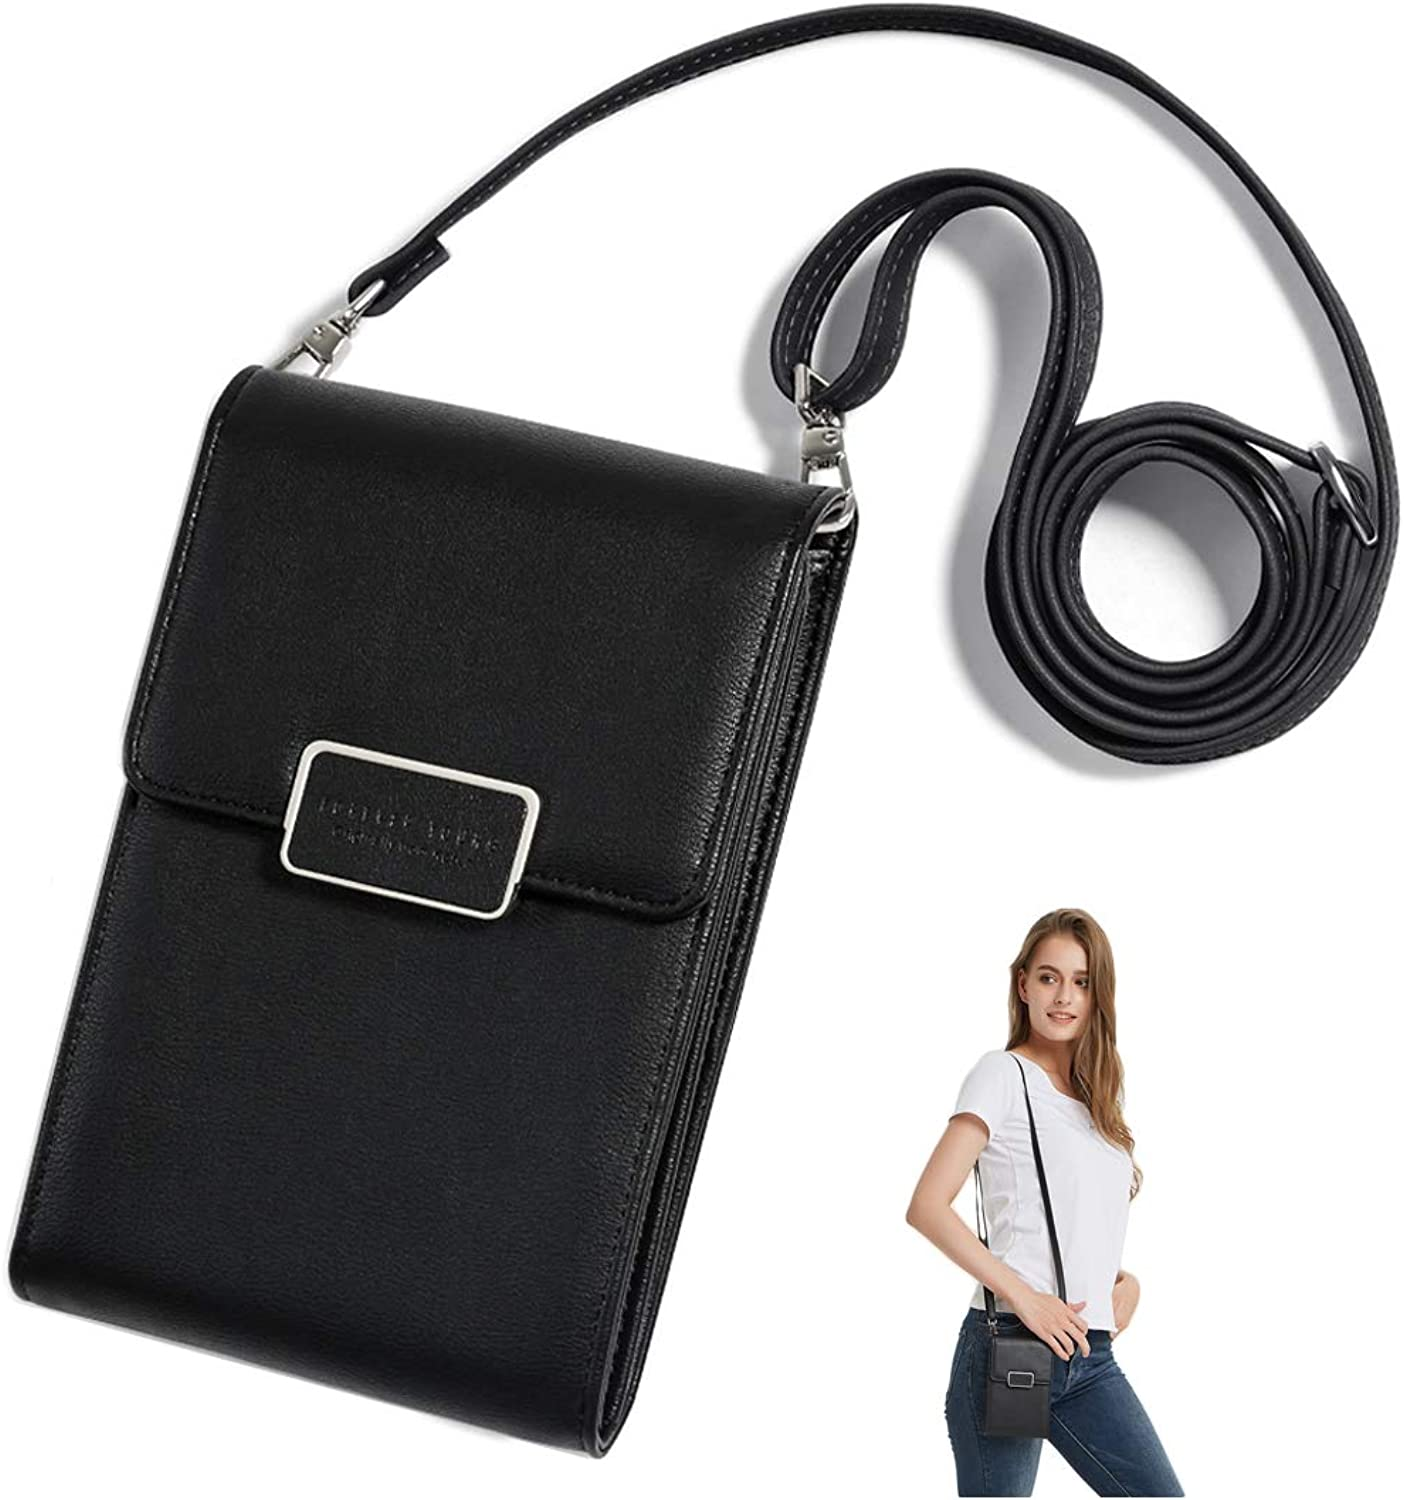 SINIANL Crossbody Bag Handbag Clutch Mini Cell Phone Pocket Pouch Purse Wallet Credit Card Holder for Girls Women